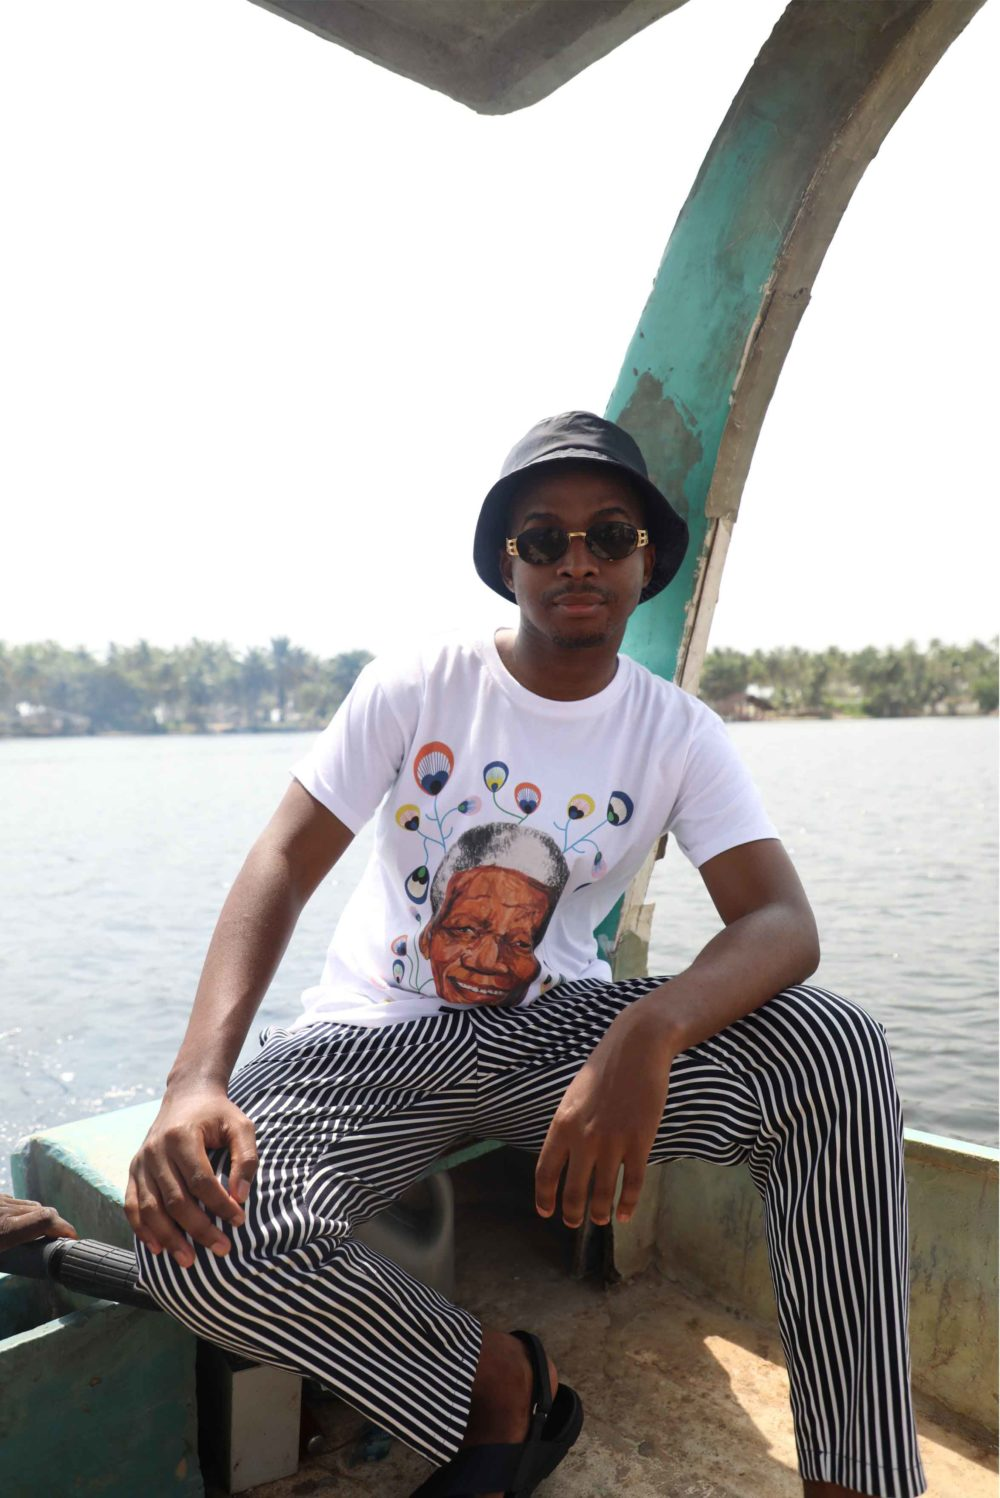 Trevor stuurman wearing the nelson mandela shirt